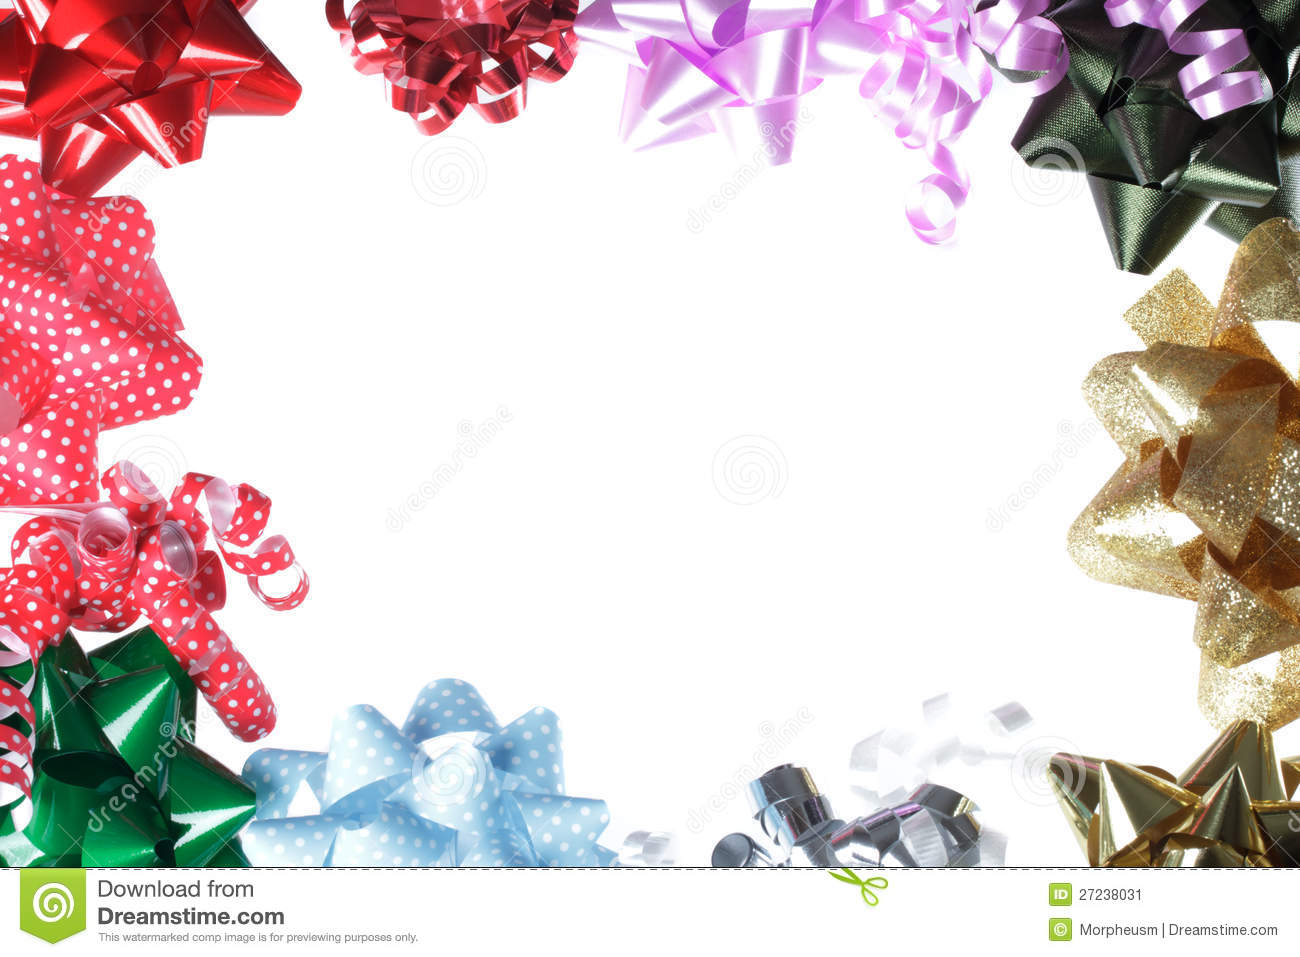 Gift Bow Border With White Background Stock Image - Image: 27238031